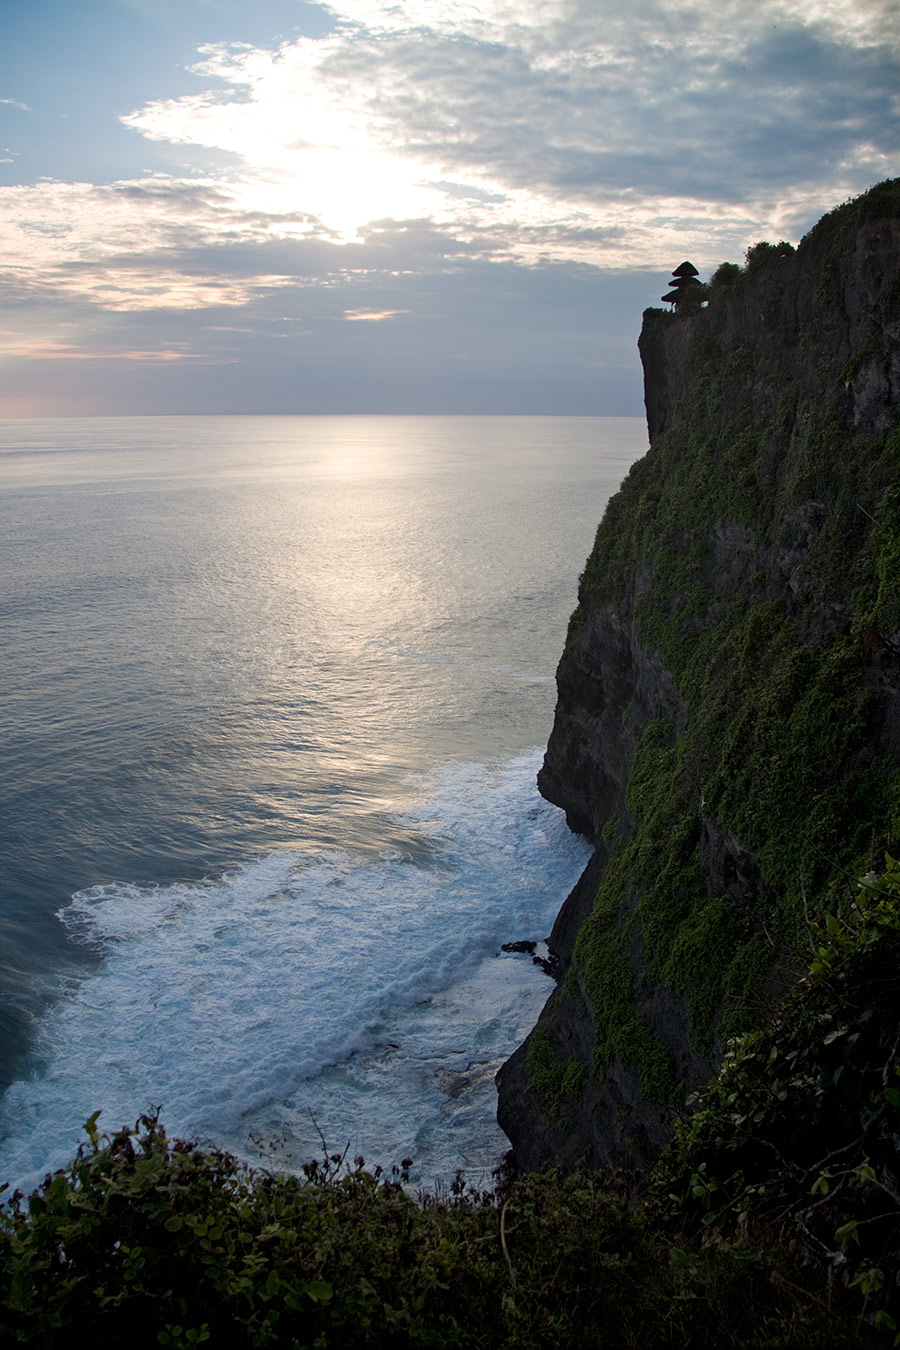 A temple on a cliff in Uluwatu, Bali.